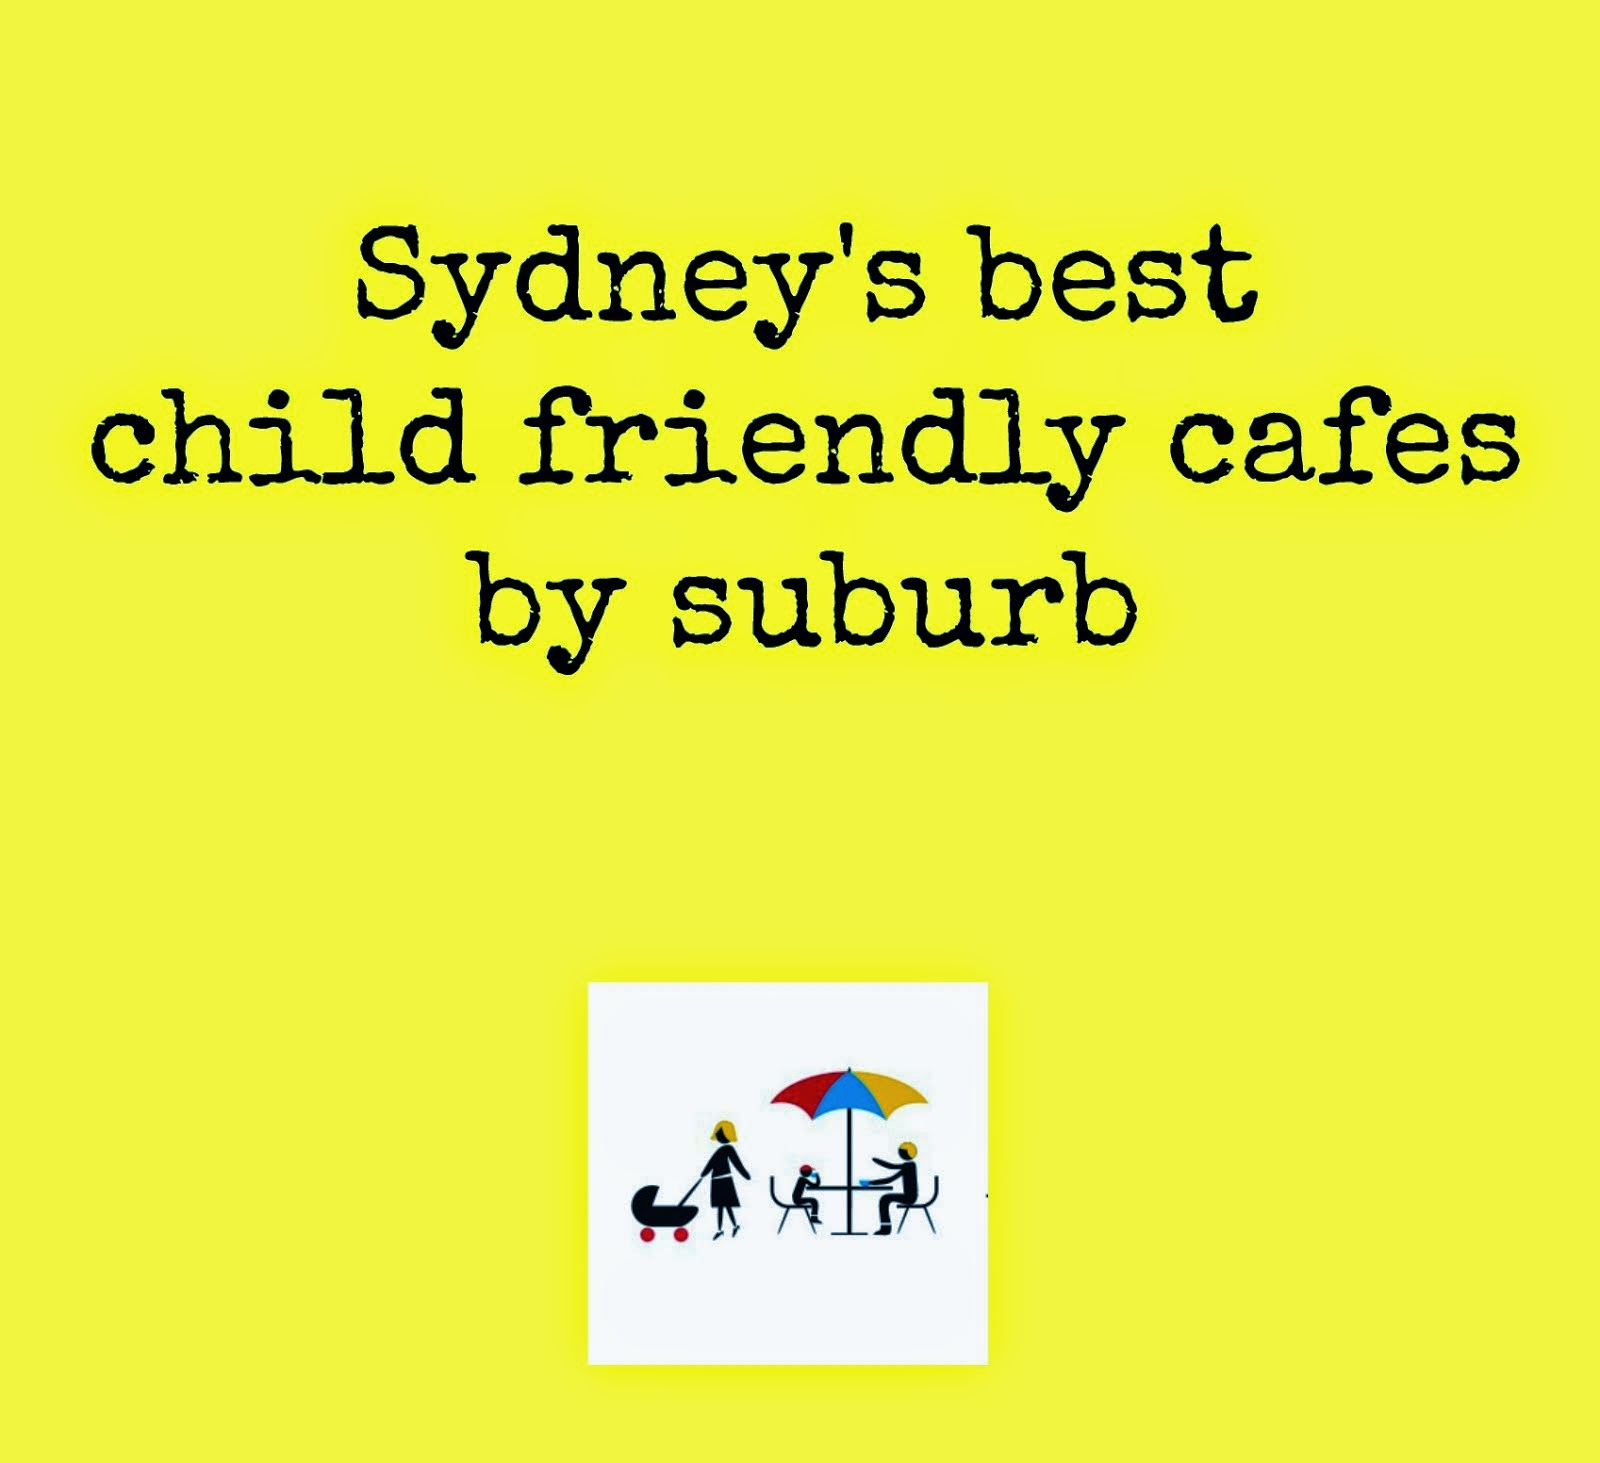 Your child friendly cafe guide